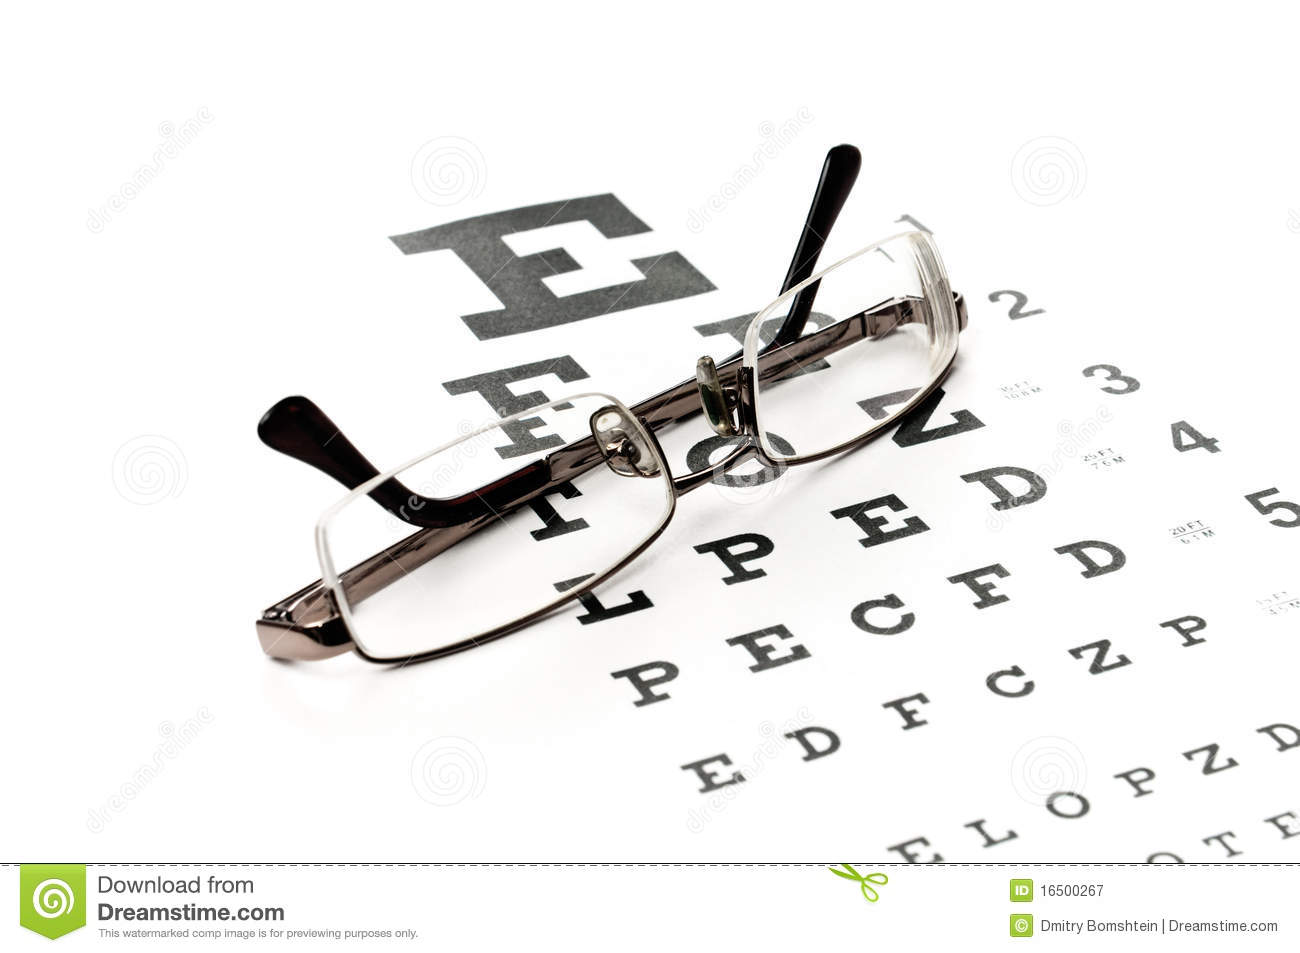 Reading glasses with eye chart stock image image of fashion reading glasses with eye chart nvjuhfo Image collections